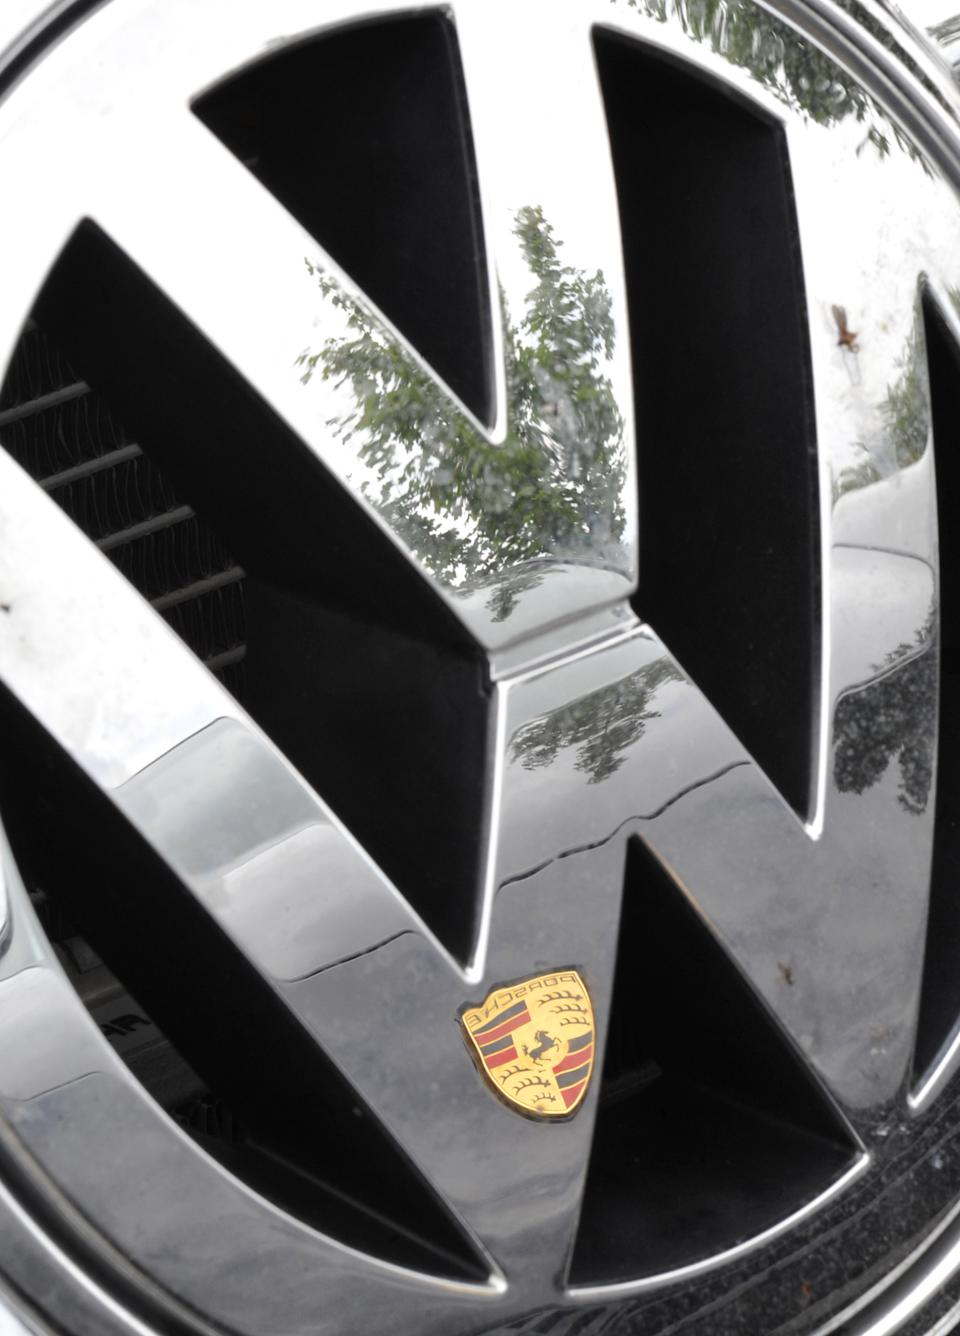 3 charged with credit fraud over Porsche's VW bid